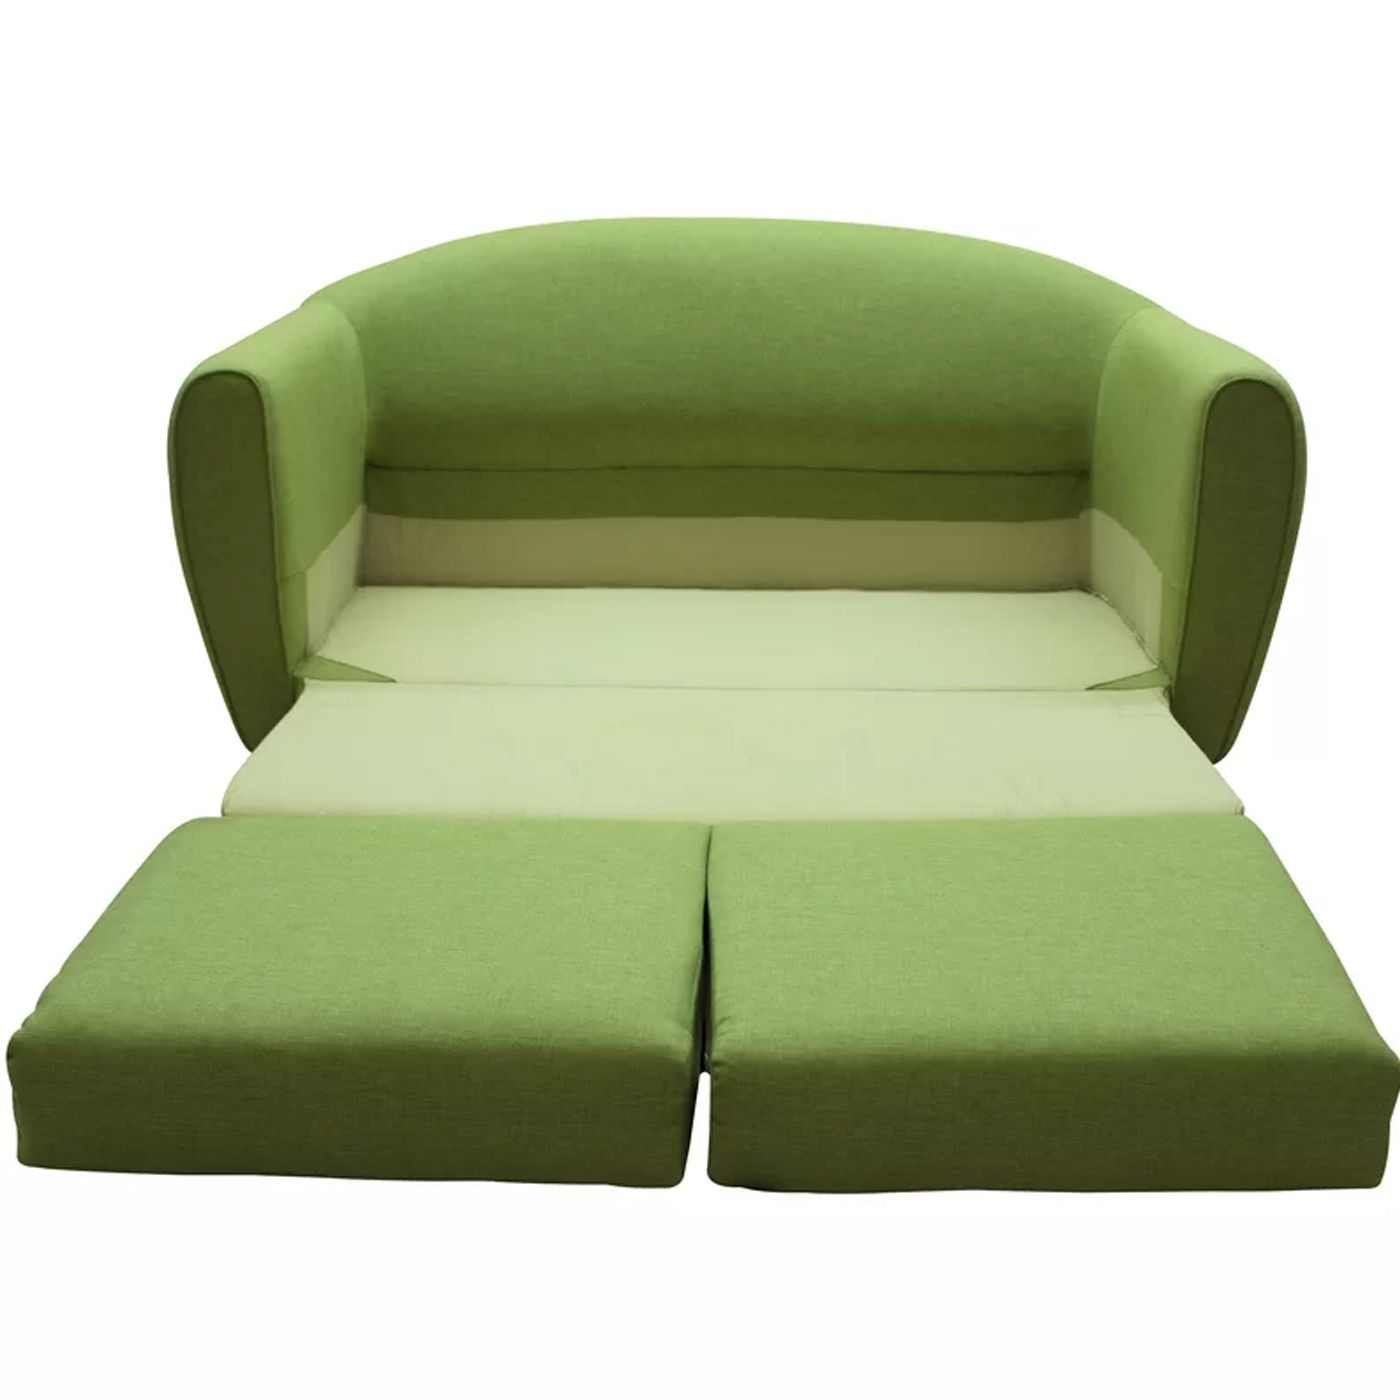 Best Pin By Stylecrome On Sofa Cheap Sofa Sets Loveseat 640 x 480